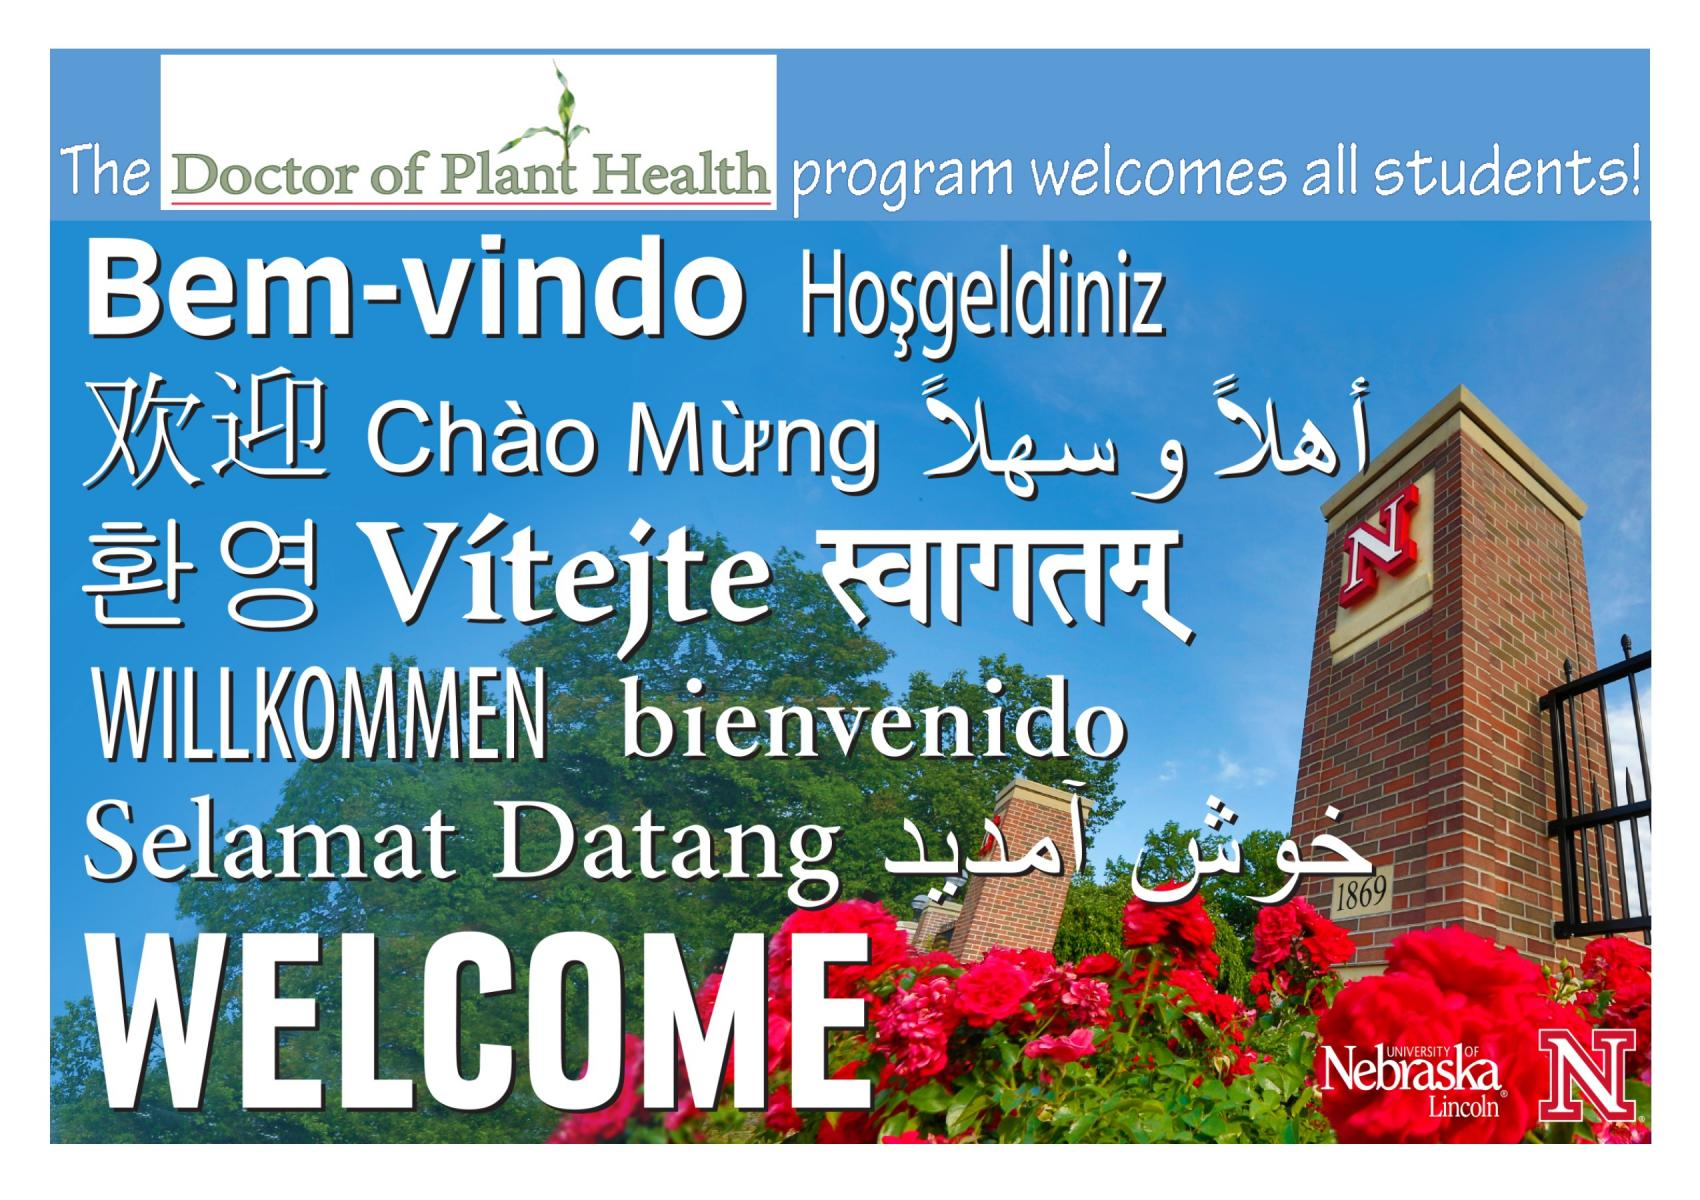 DPH welcome sign